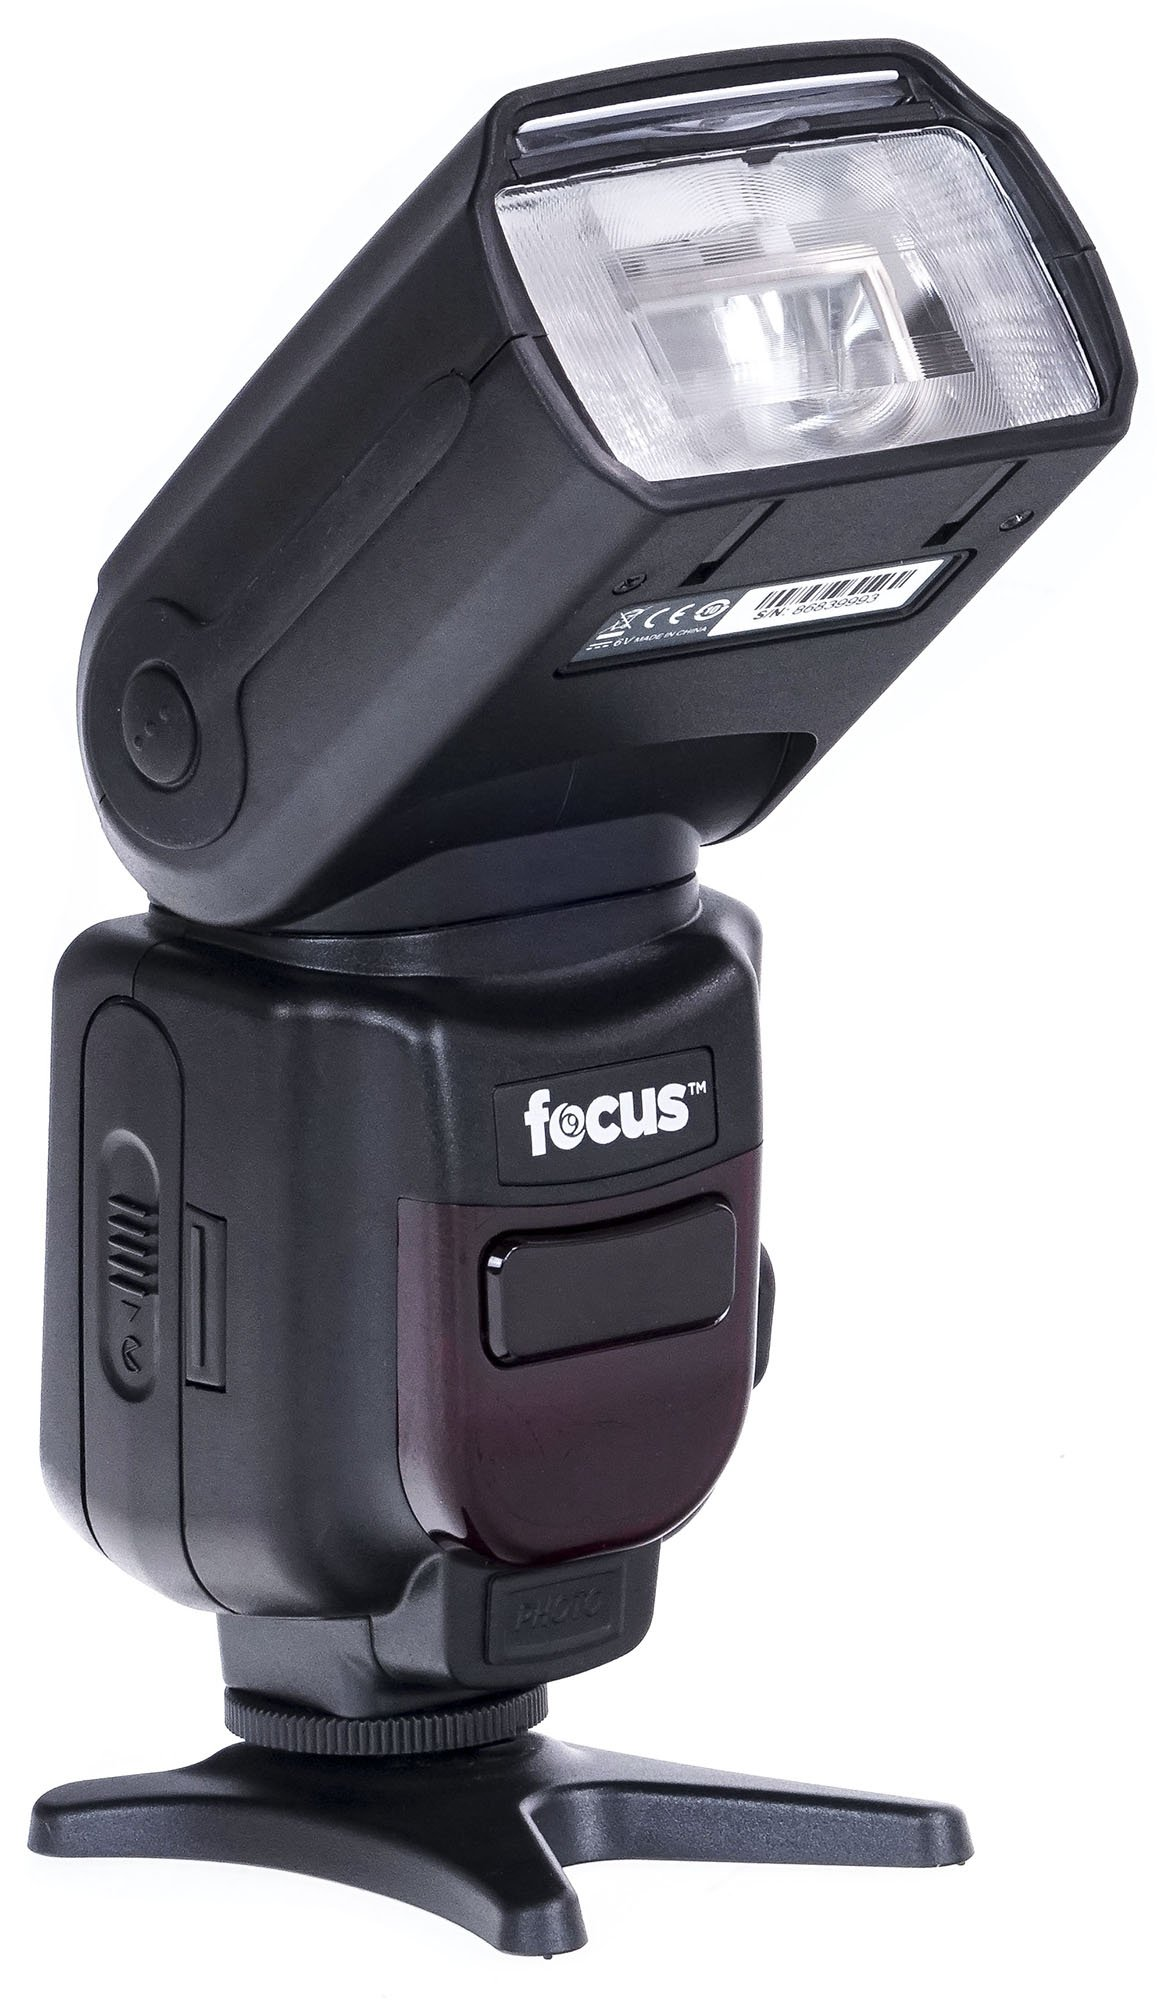 Focus Camera Professional Zoom TTL Speedlite Flash - with Built-in Transmitter/Receiver for Canon and Nikon DSLR Cameras